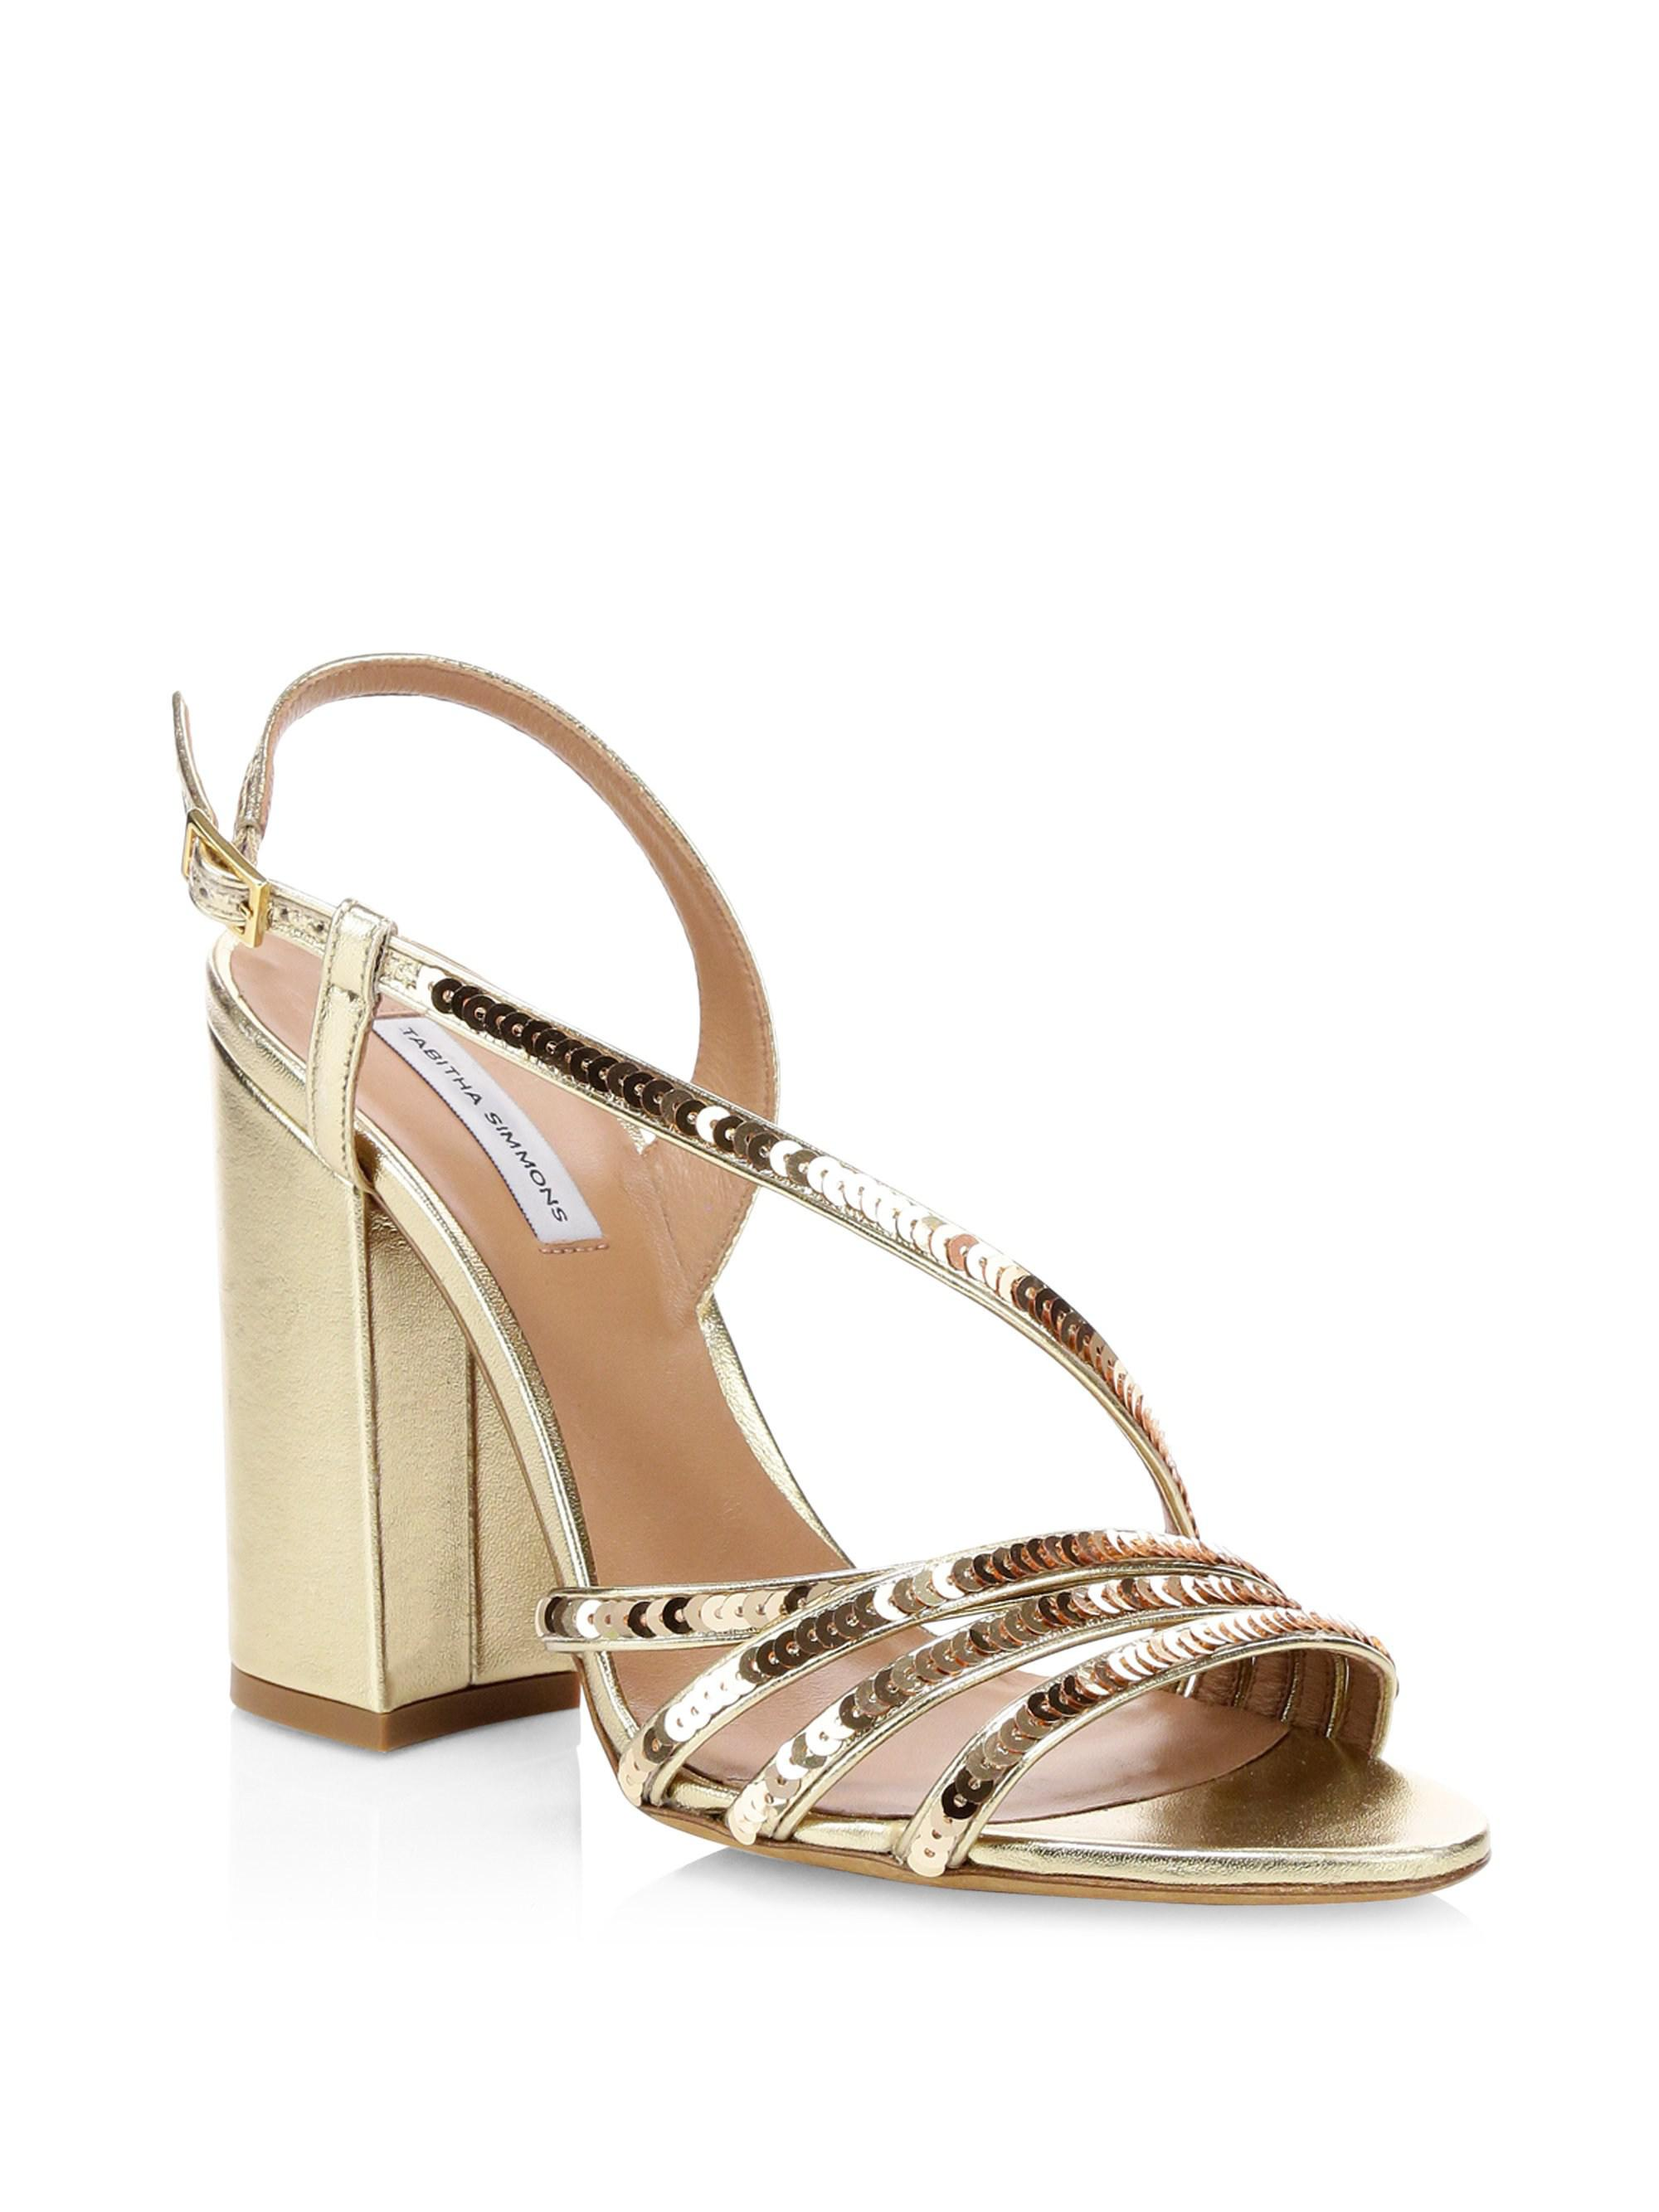 2a977a11d924 Tabitha Simmons. Metallic Women s Viola Sequin Strappy High Block-heel  Sandals